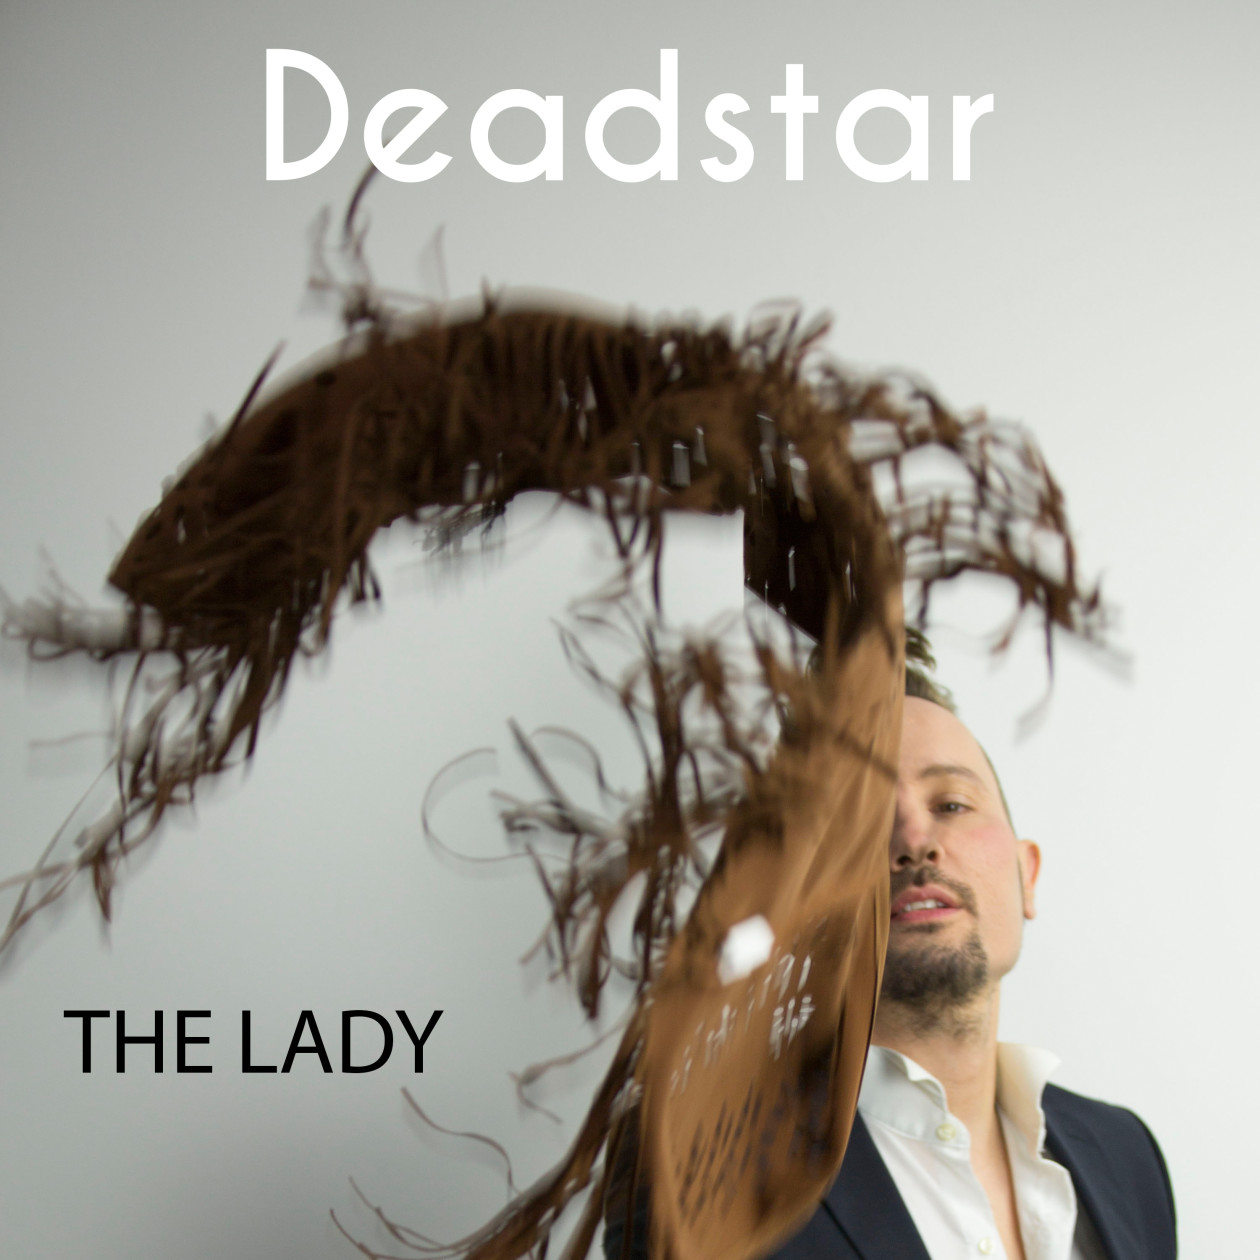 Deadstar-The lady